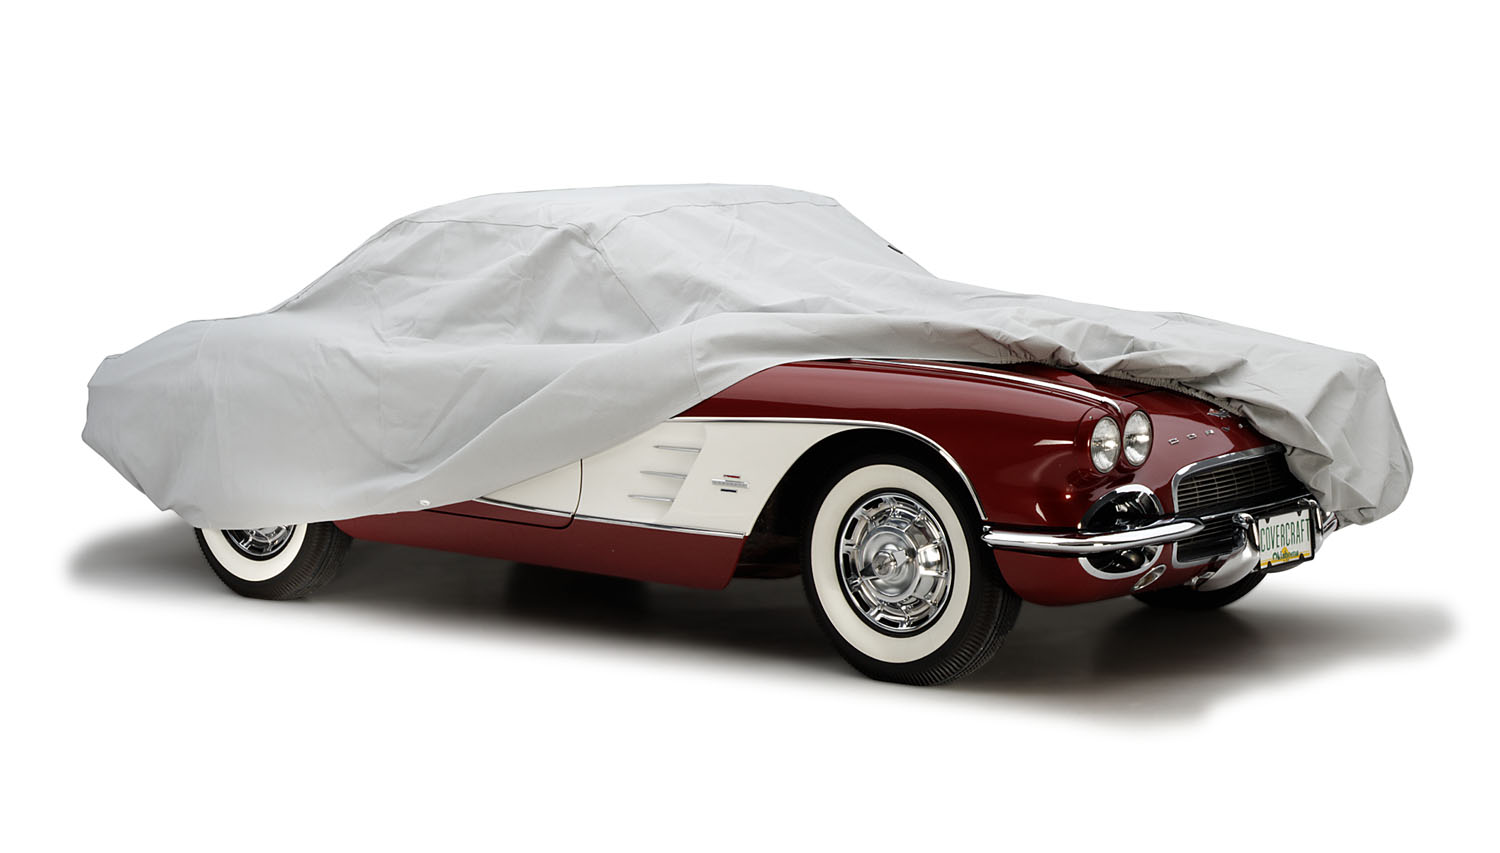 Covercraft Car Cover (CB31GK)